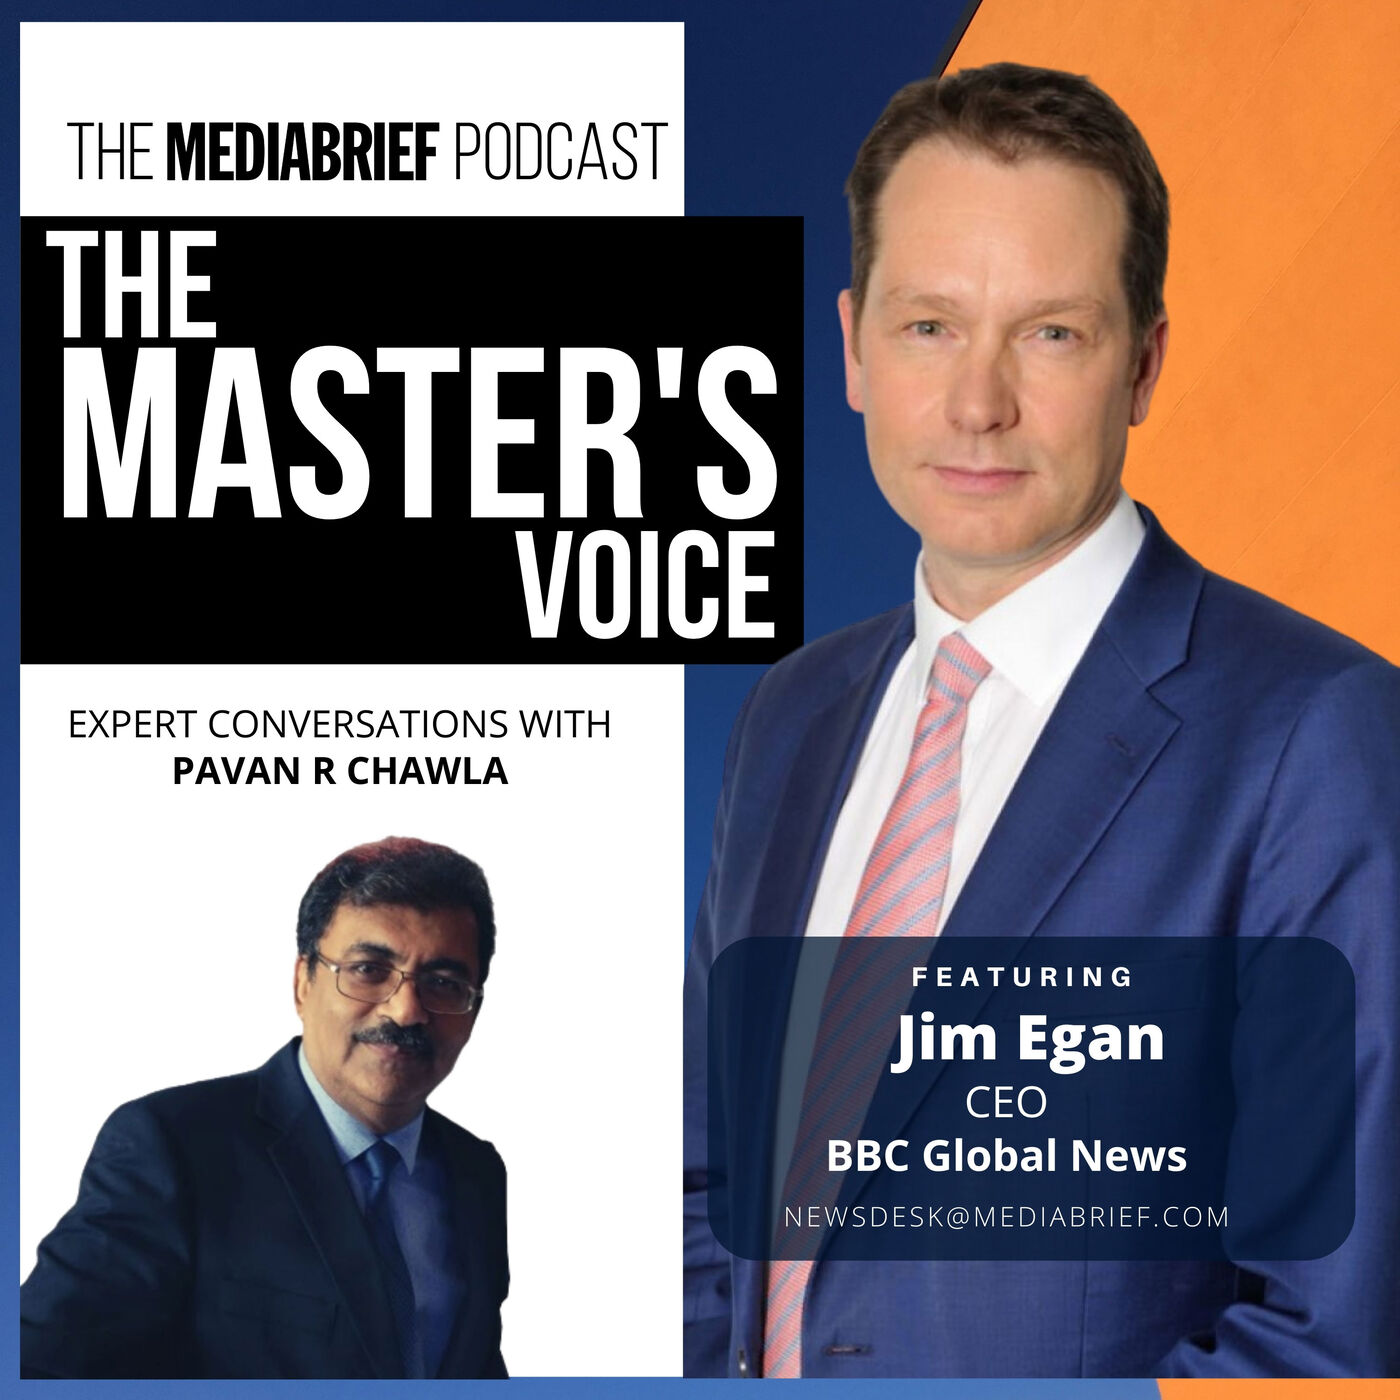 Jim Egan on The Master's Voice from MediaBrief.com